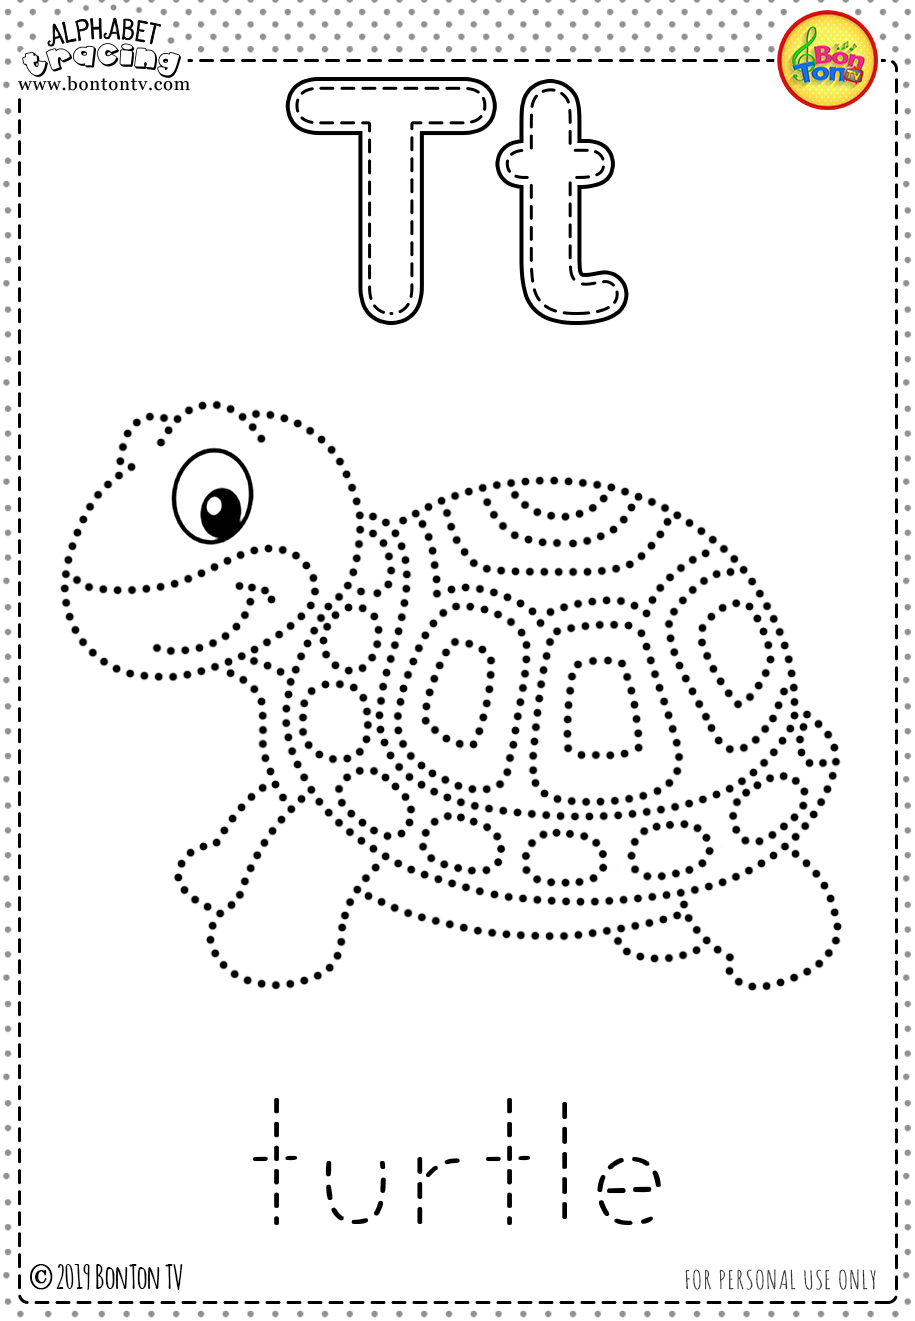 Free Preschool Printables - Alphabet Tracing And Coloring throughout Alphabet Tracing And Coloring Pages